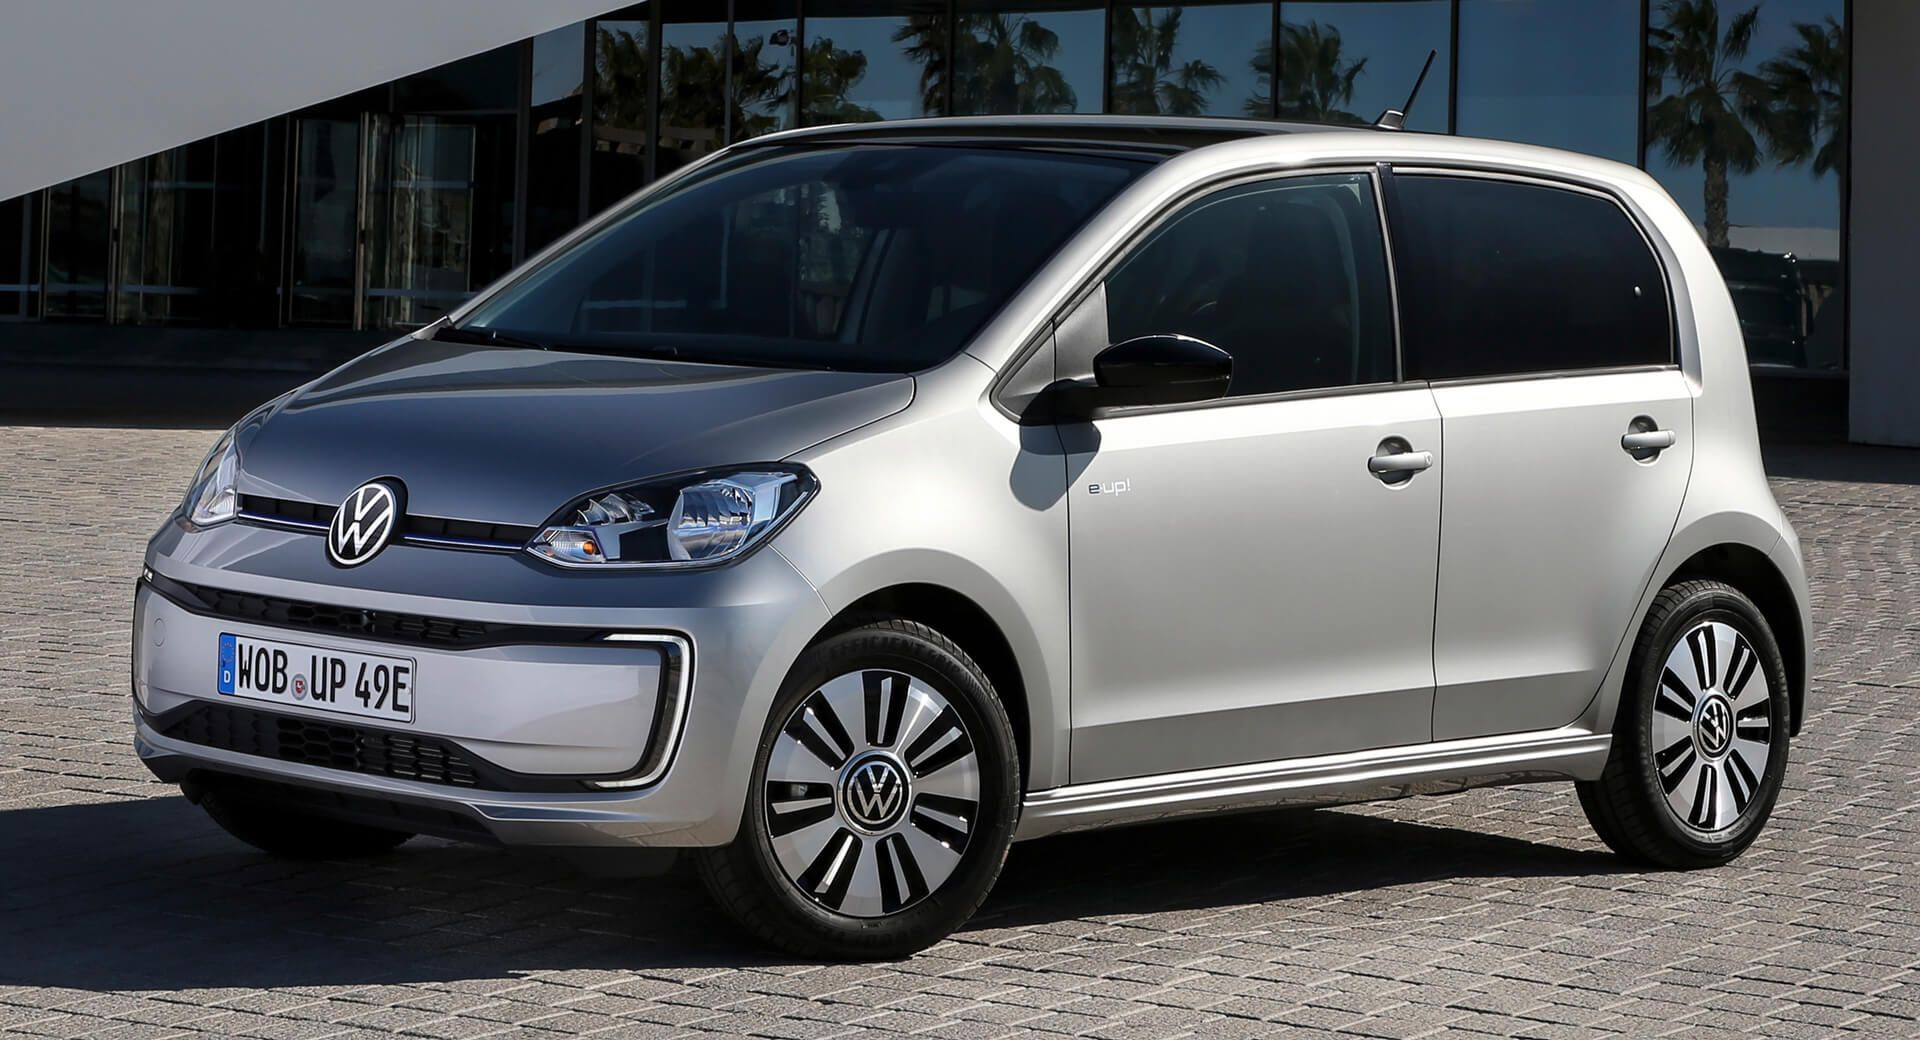 Get The 2020 Vw E Up Electric City Car From 19 695 In The Uk Electricvehicles Newcars Prices Uk Vw Vwup Cars Carsofinstagram In 2020 City Car Volkswagen Car